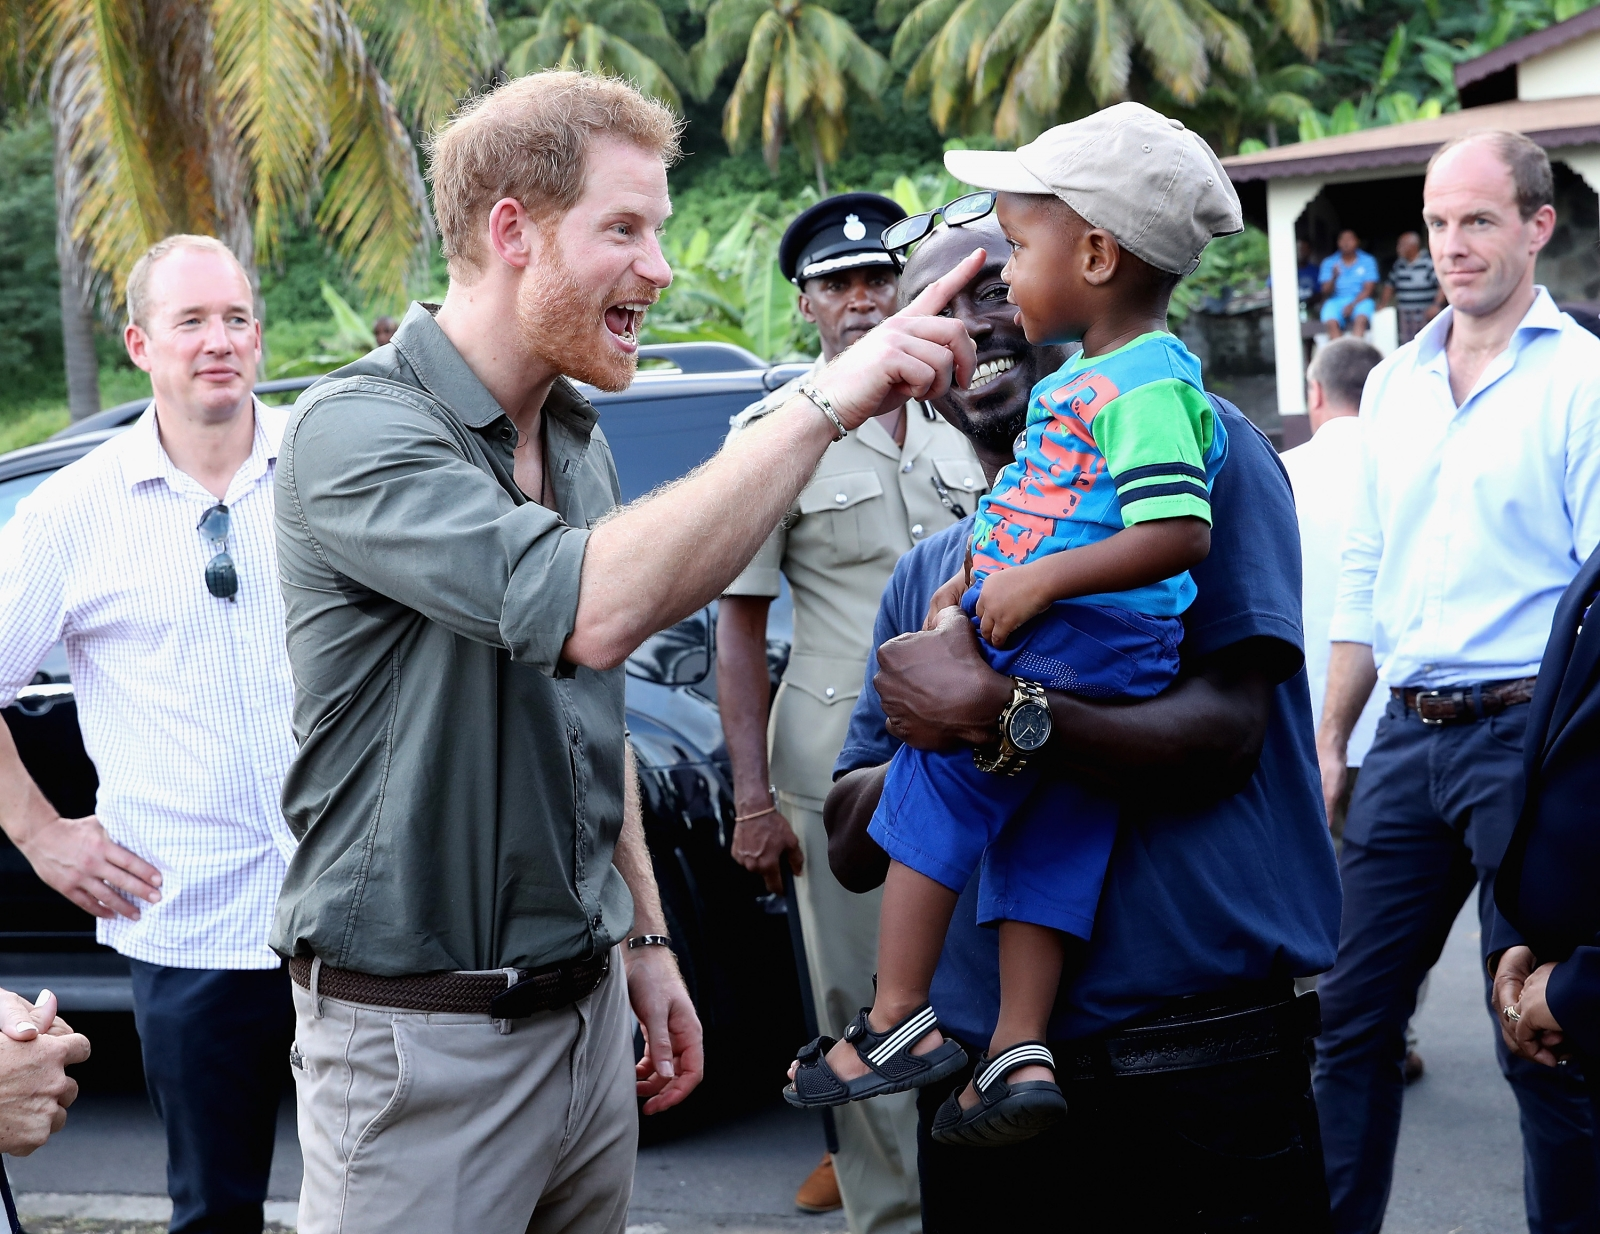 Prince harry meets child in Caribbean